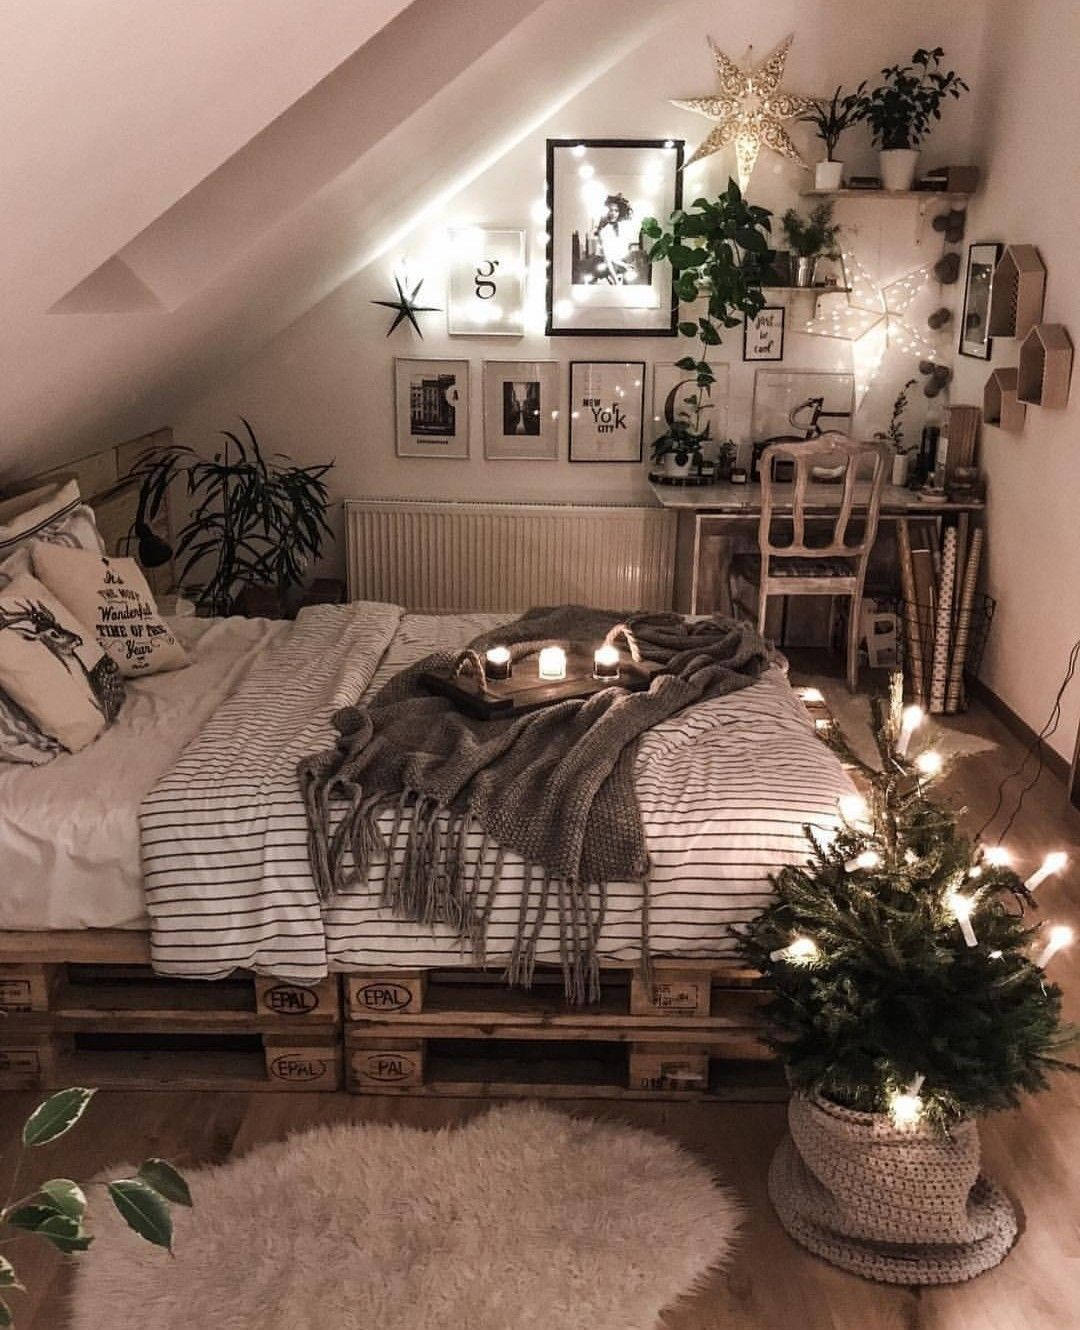 Pin By Whitney Alford On Apartments Small Bedroom Decor Bedroom Design Small Bedroom